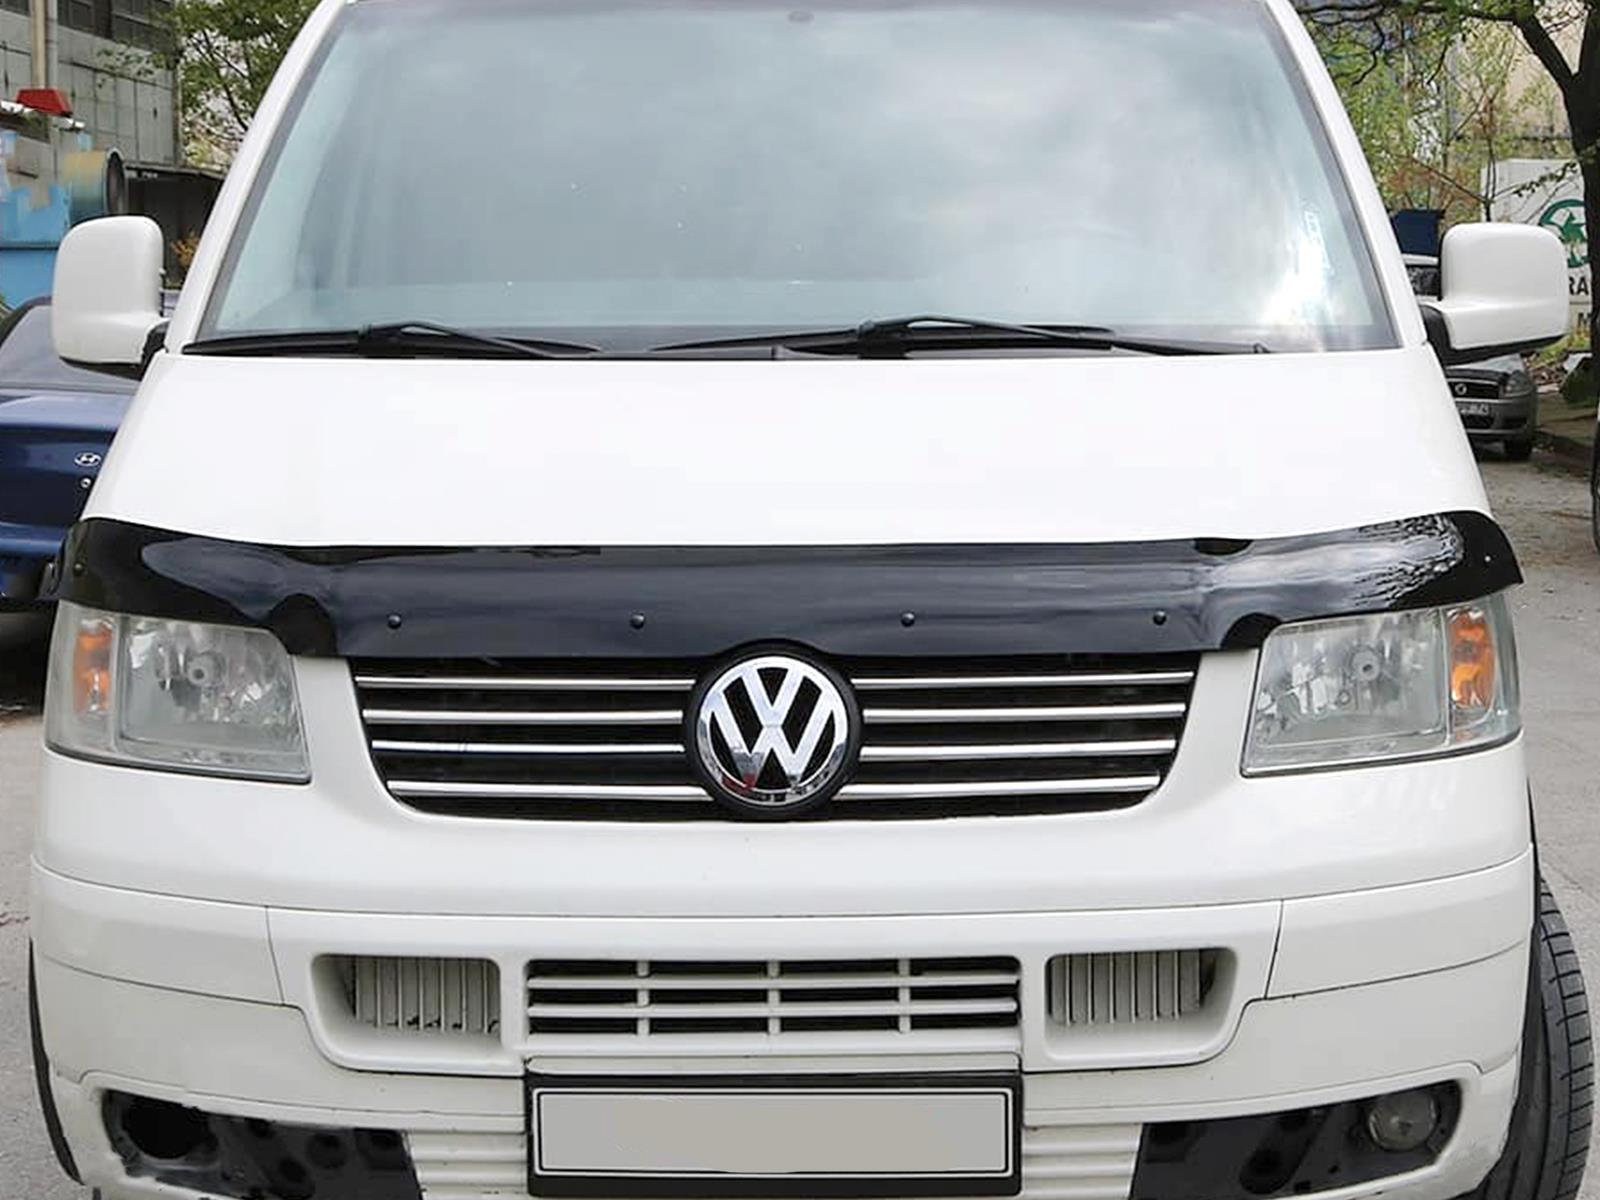 Van Demon Tailored Black Bonnet Deflector Acylic Hood Stone Bug Protector Guard for VW Transporter T5 03-10